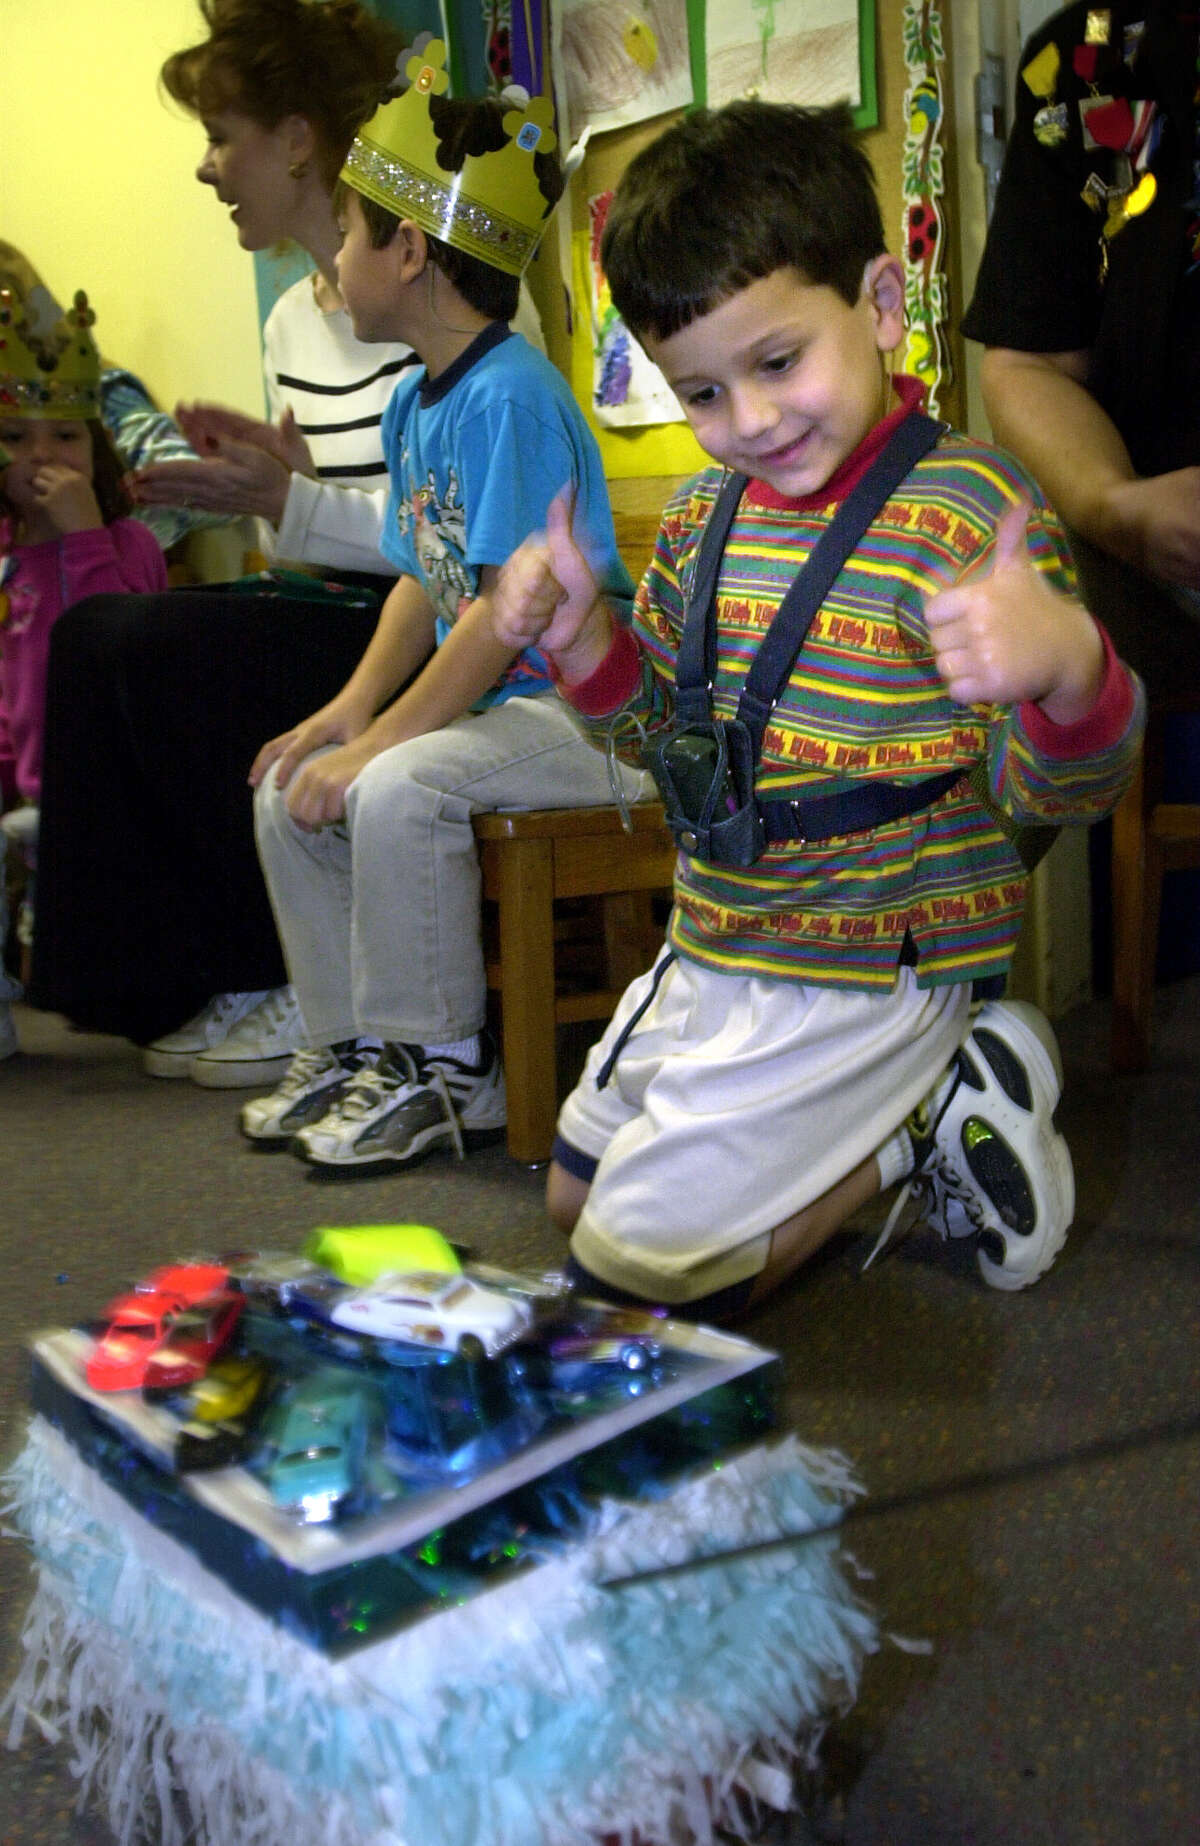 Bernard Thompson, a member of the Kinder Class at Sunshine Cottage School for Deaf Children, gives thumbs up to a shoe box float during the school's Shoebox Float Parade, April 24, 2001.